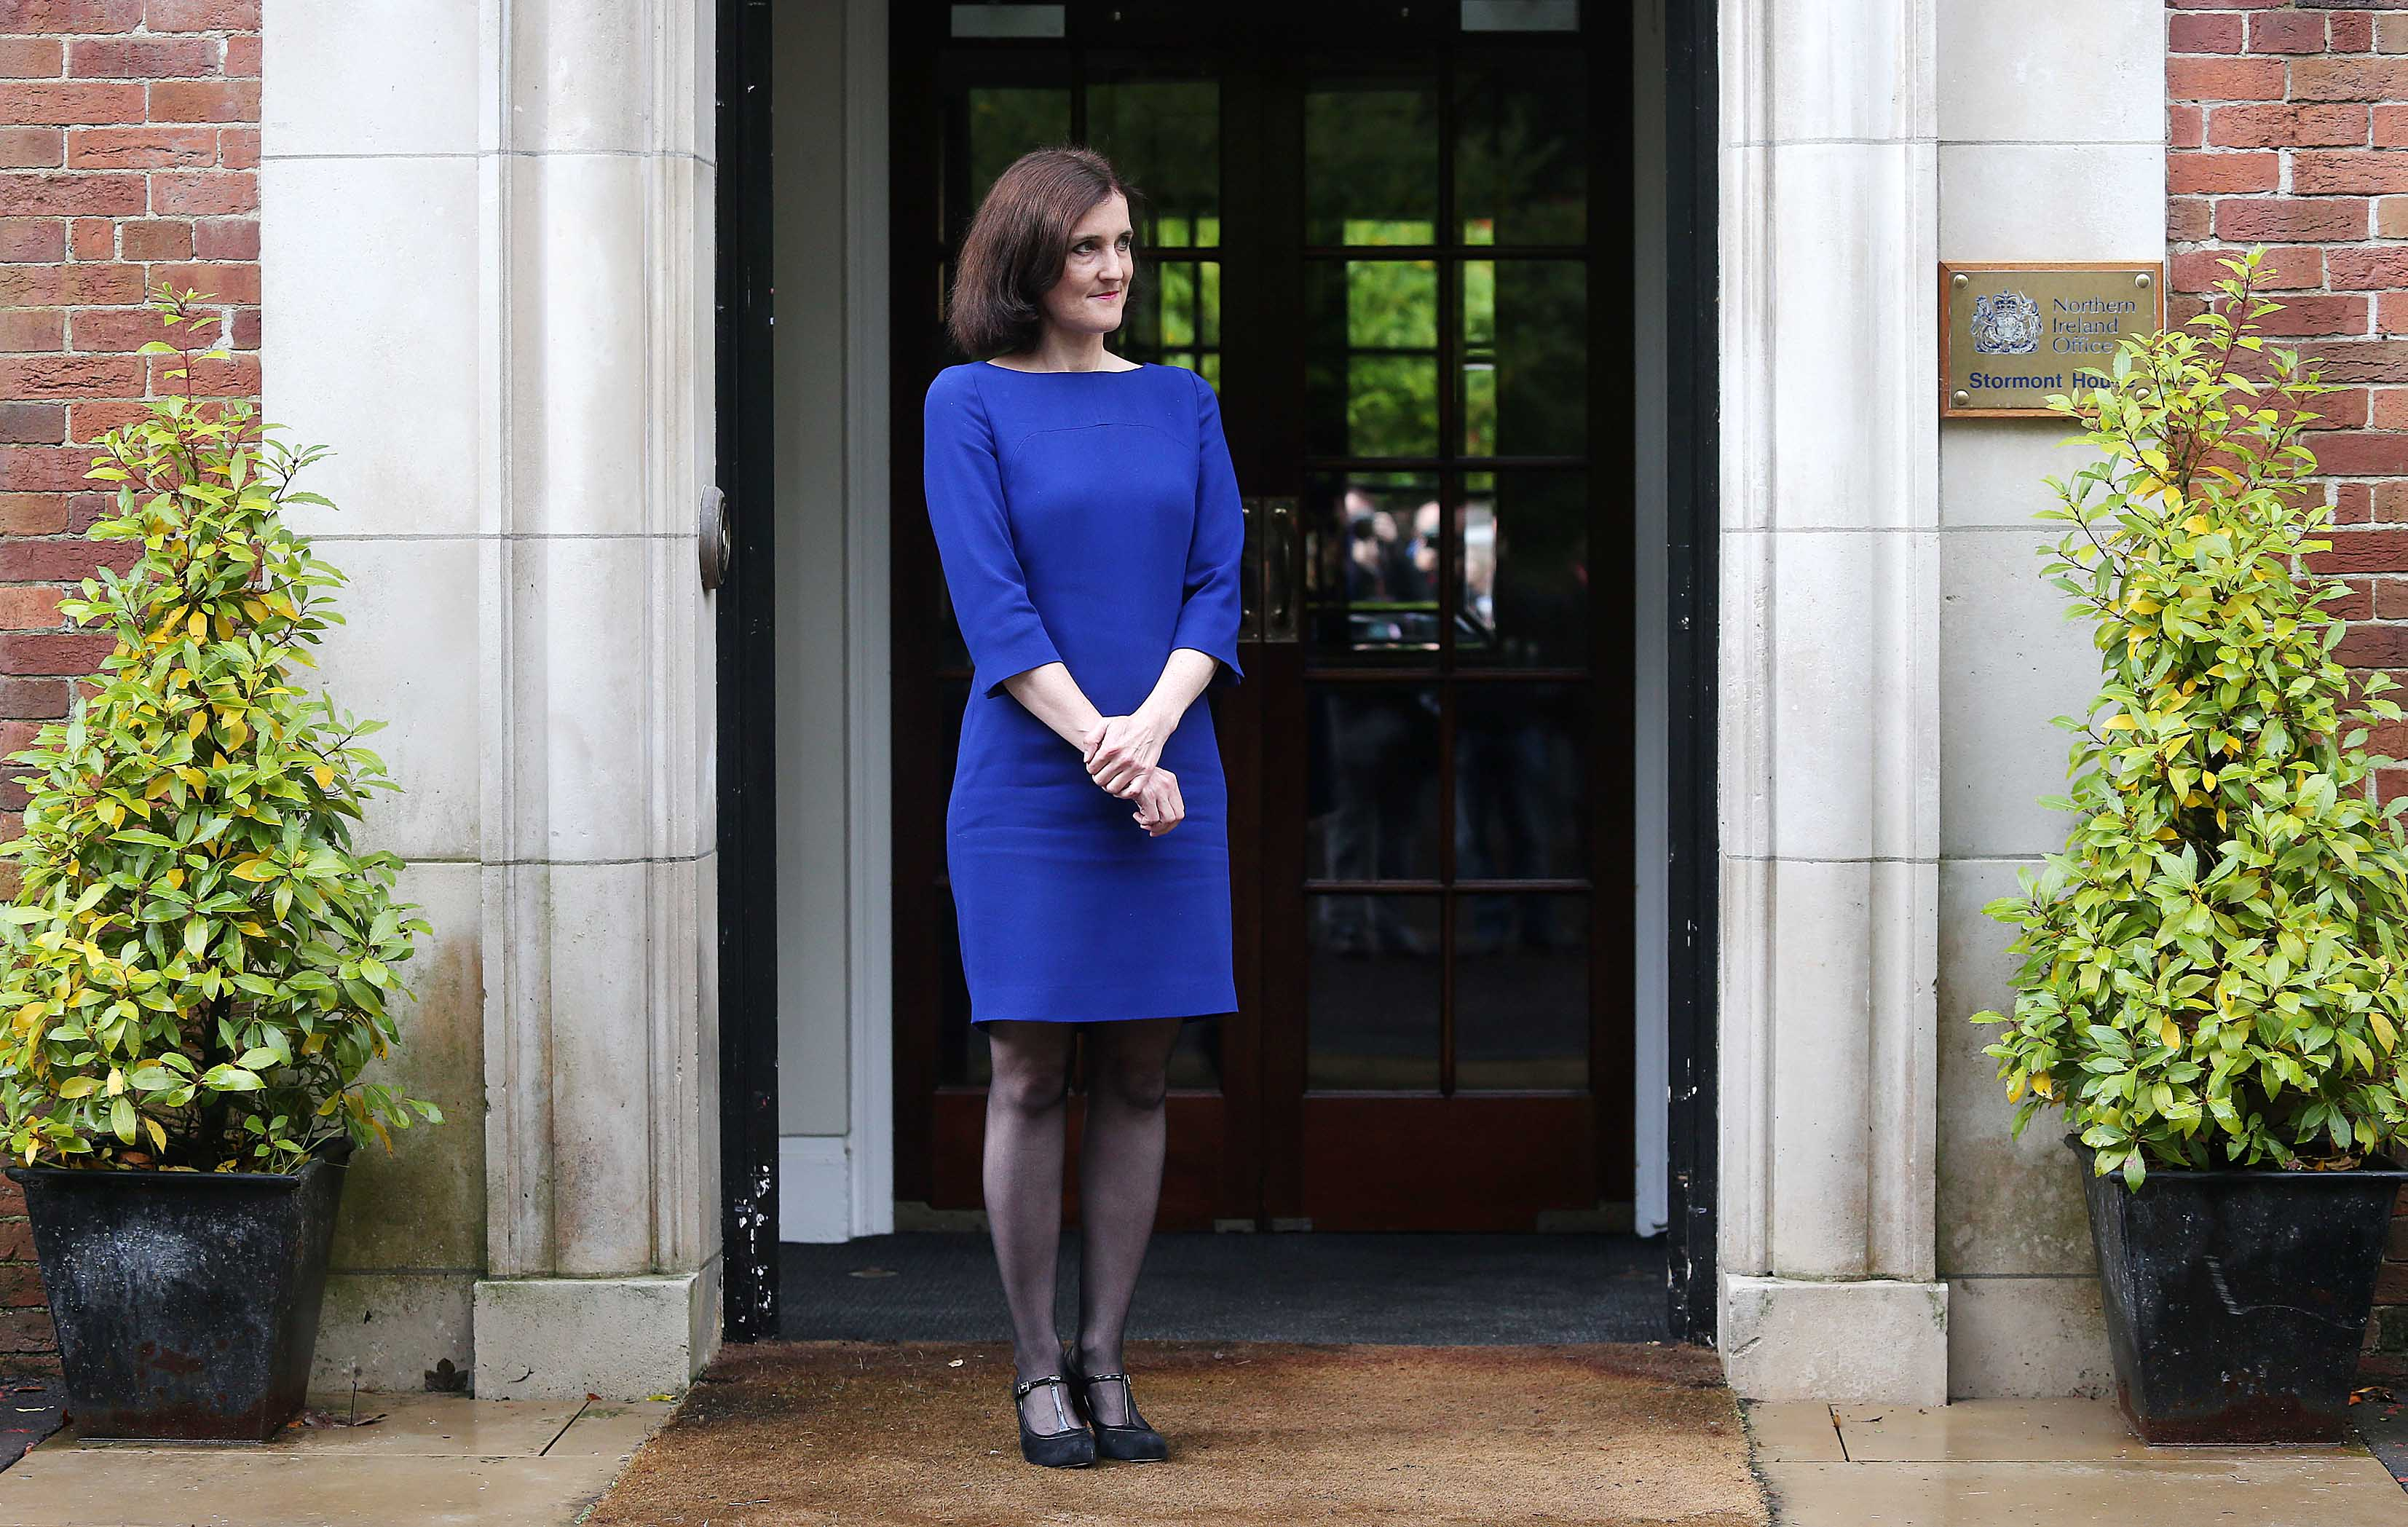 Theresa Villiers waits outside Stormont House.